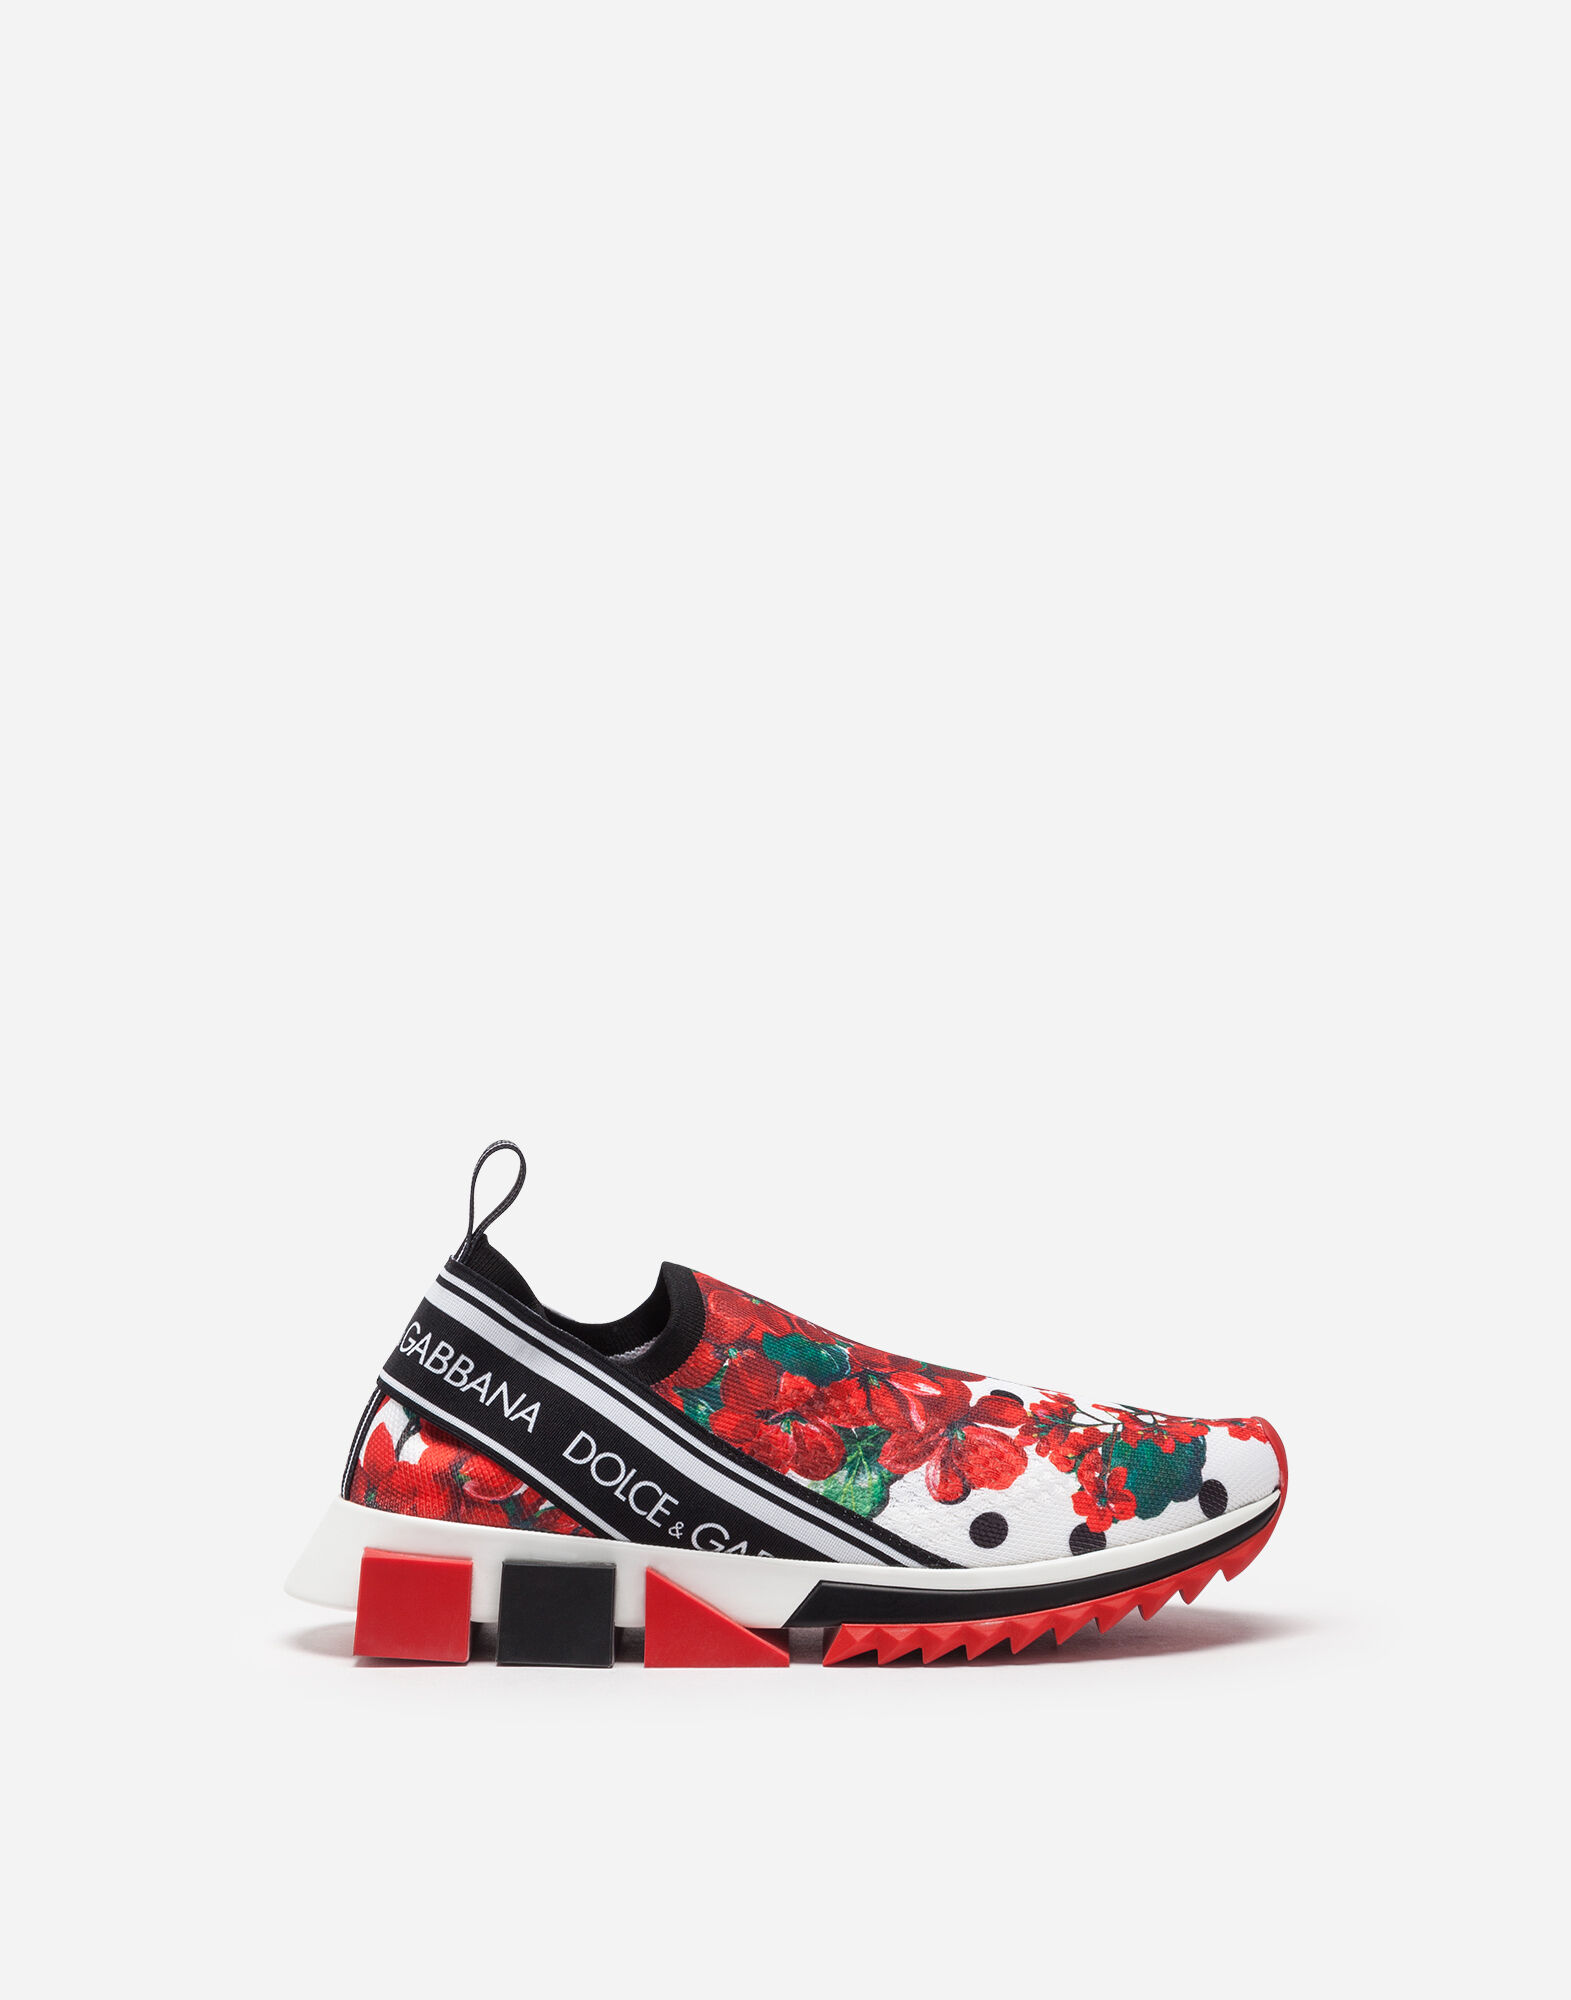 Sneakers Pour FemmeDolce amp;gabbana Sneakers Pour trdshQ